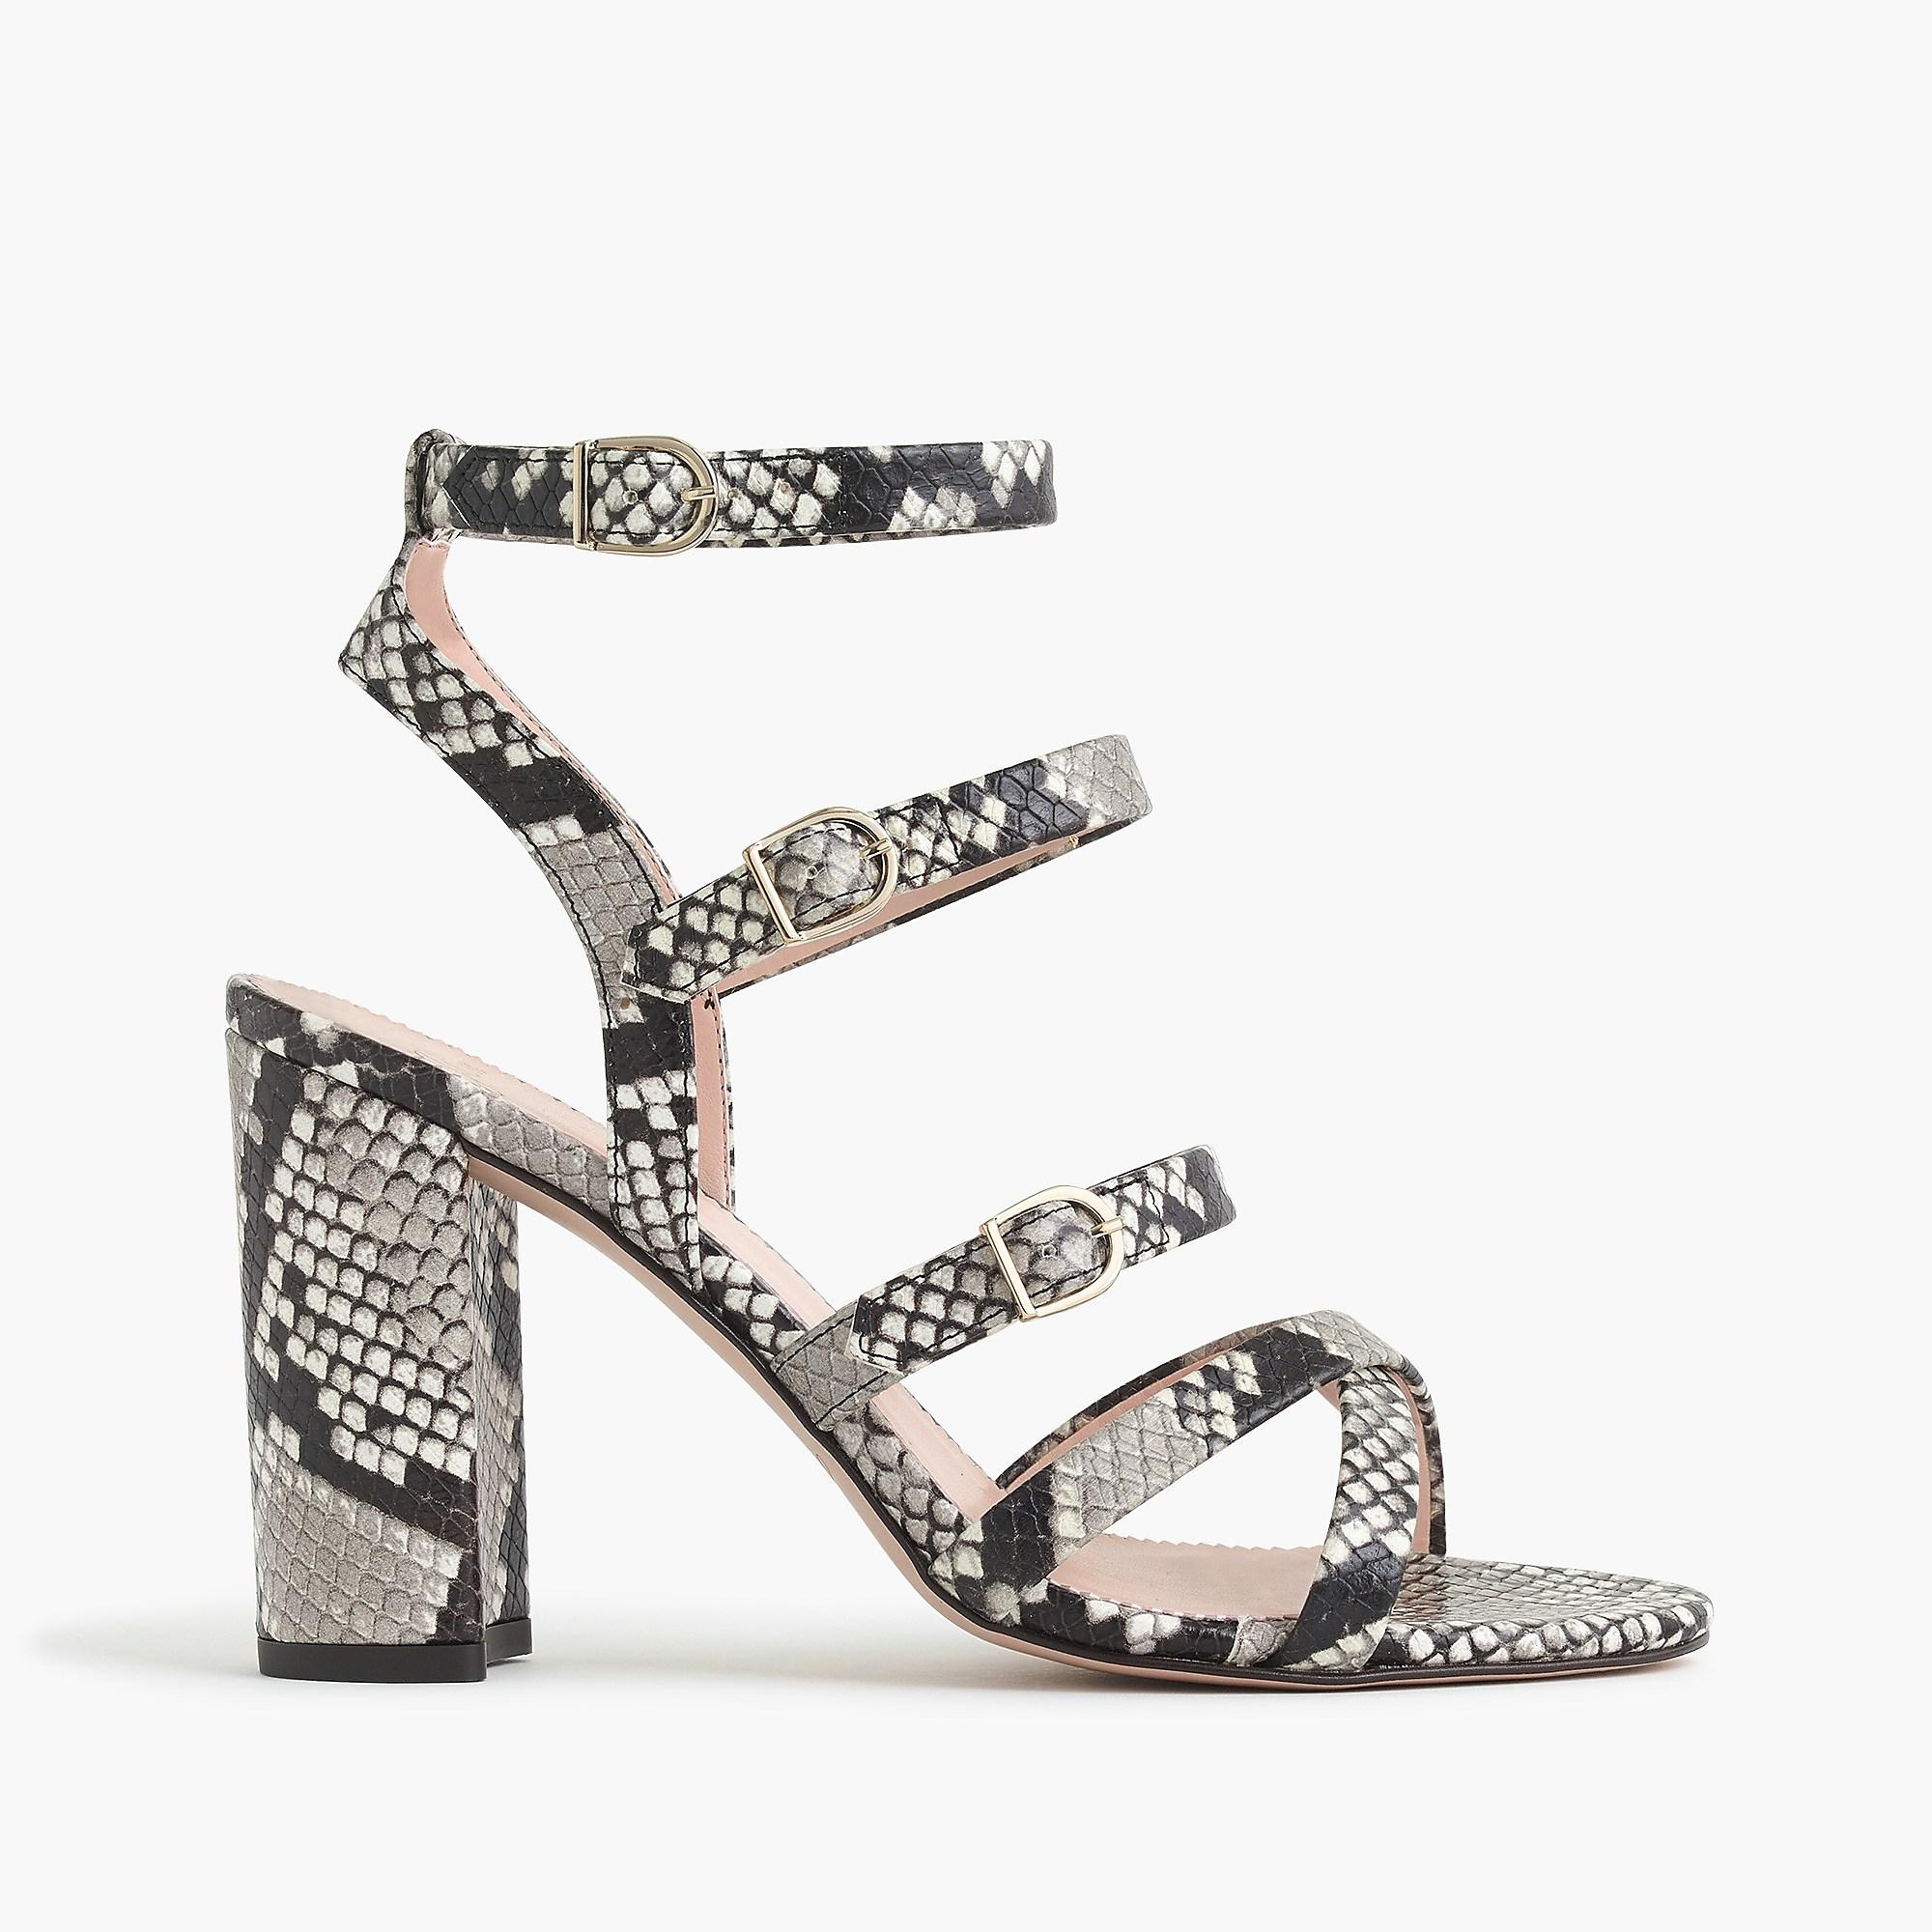 2c171f7a9ea J.Crew - Multicolor Buckled High-heel Sandals In Faux Snakeskin - Lyst.  View fullscreen